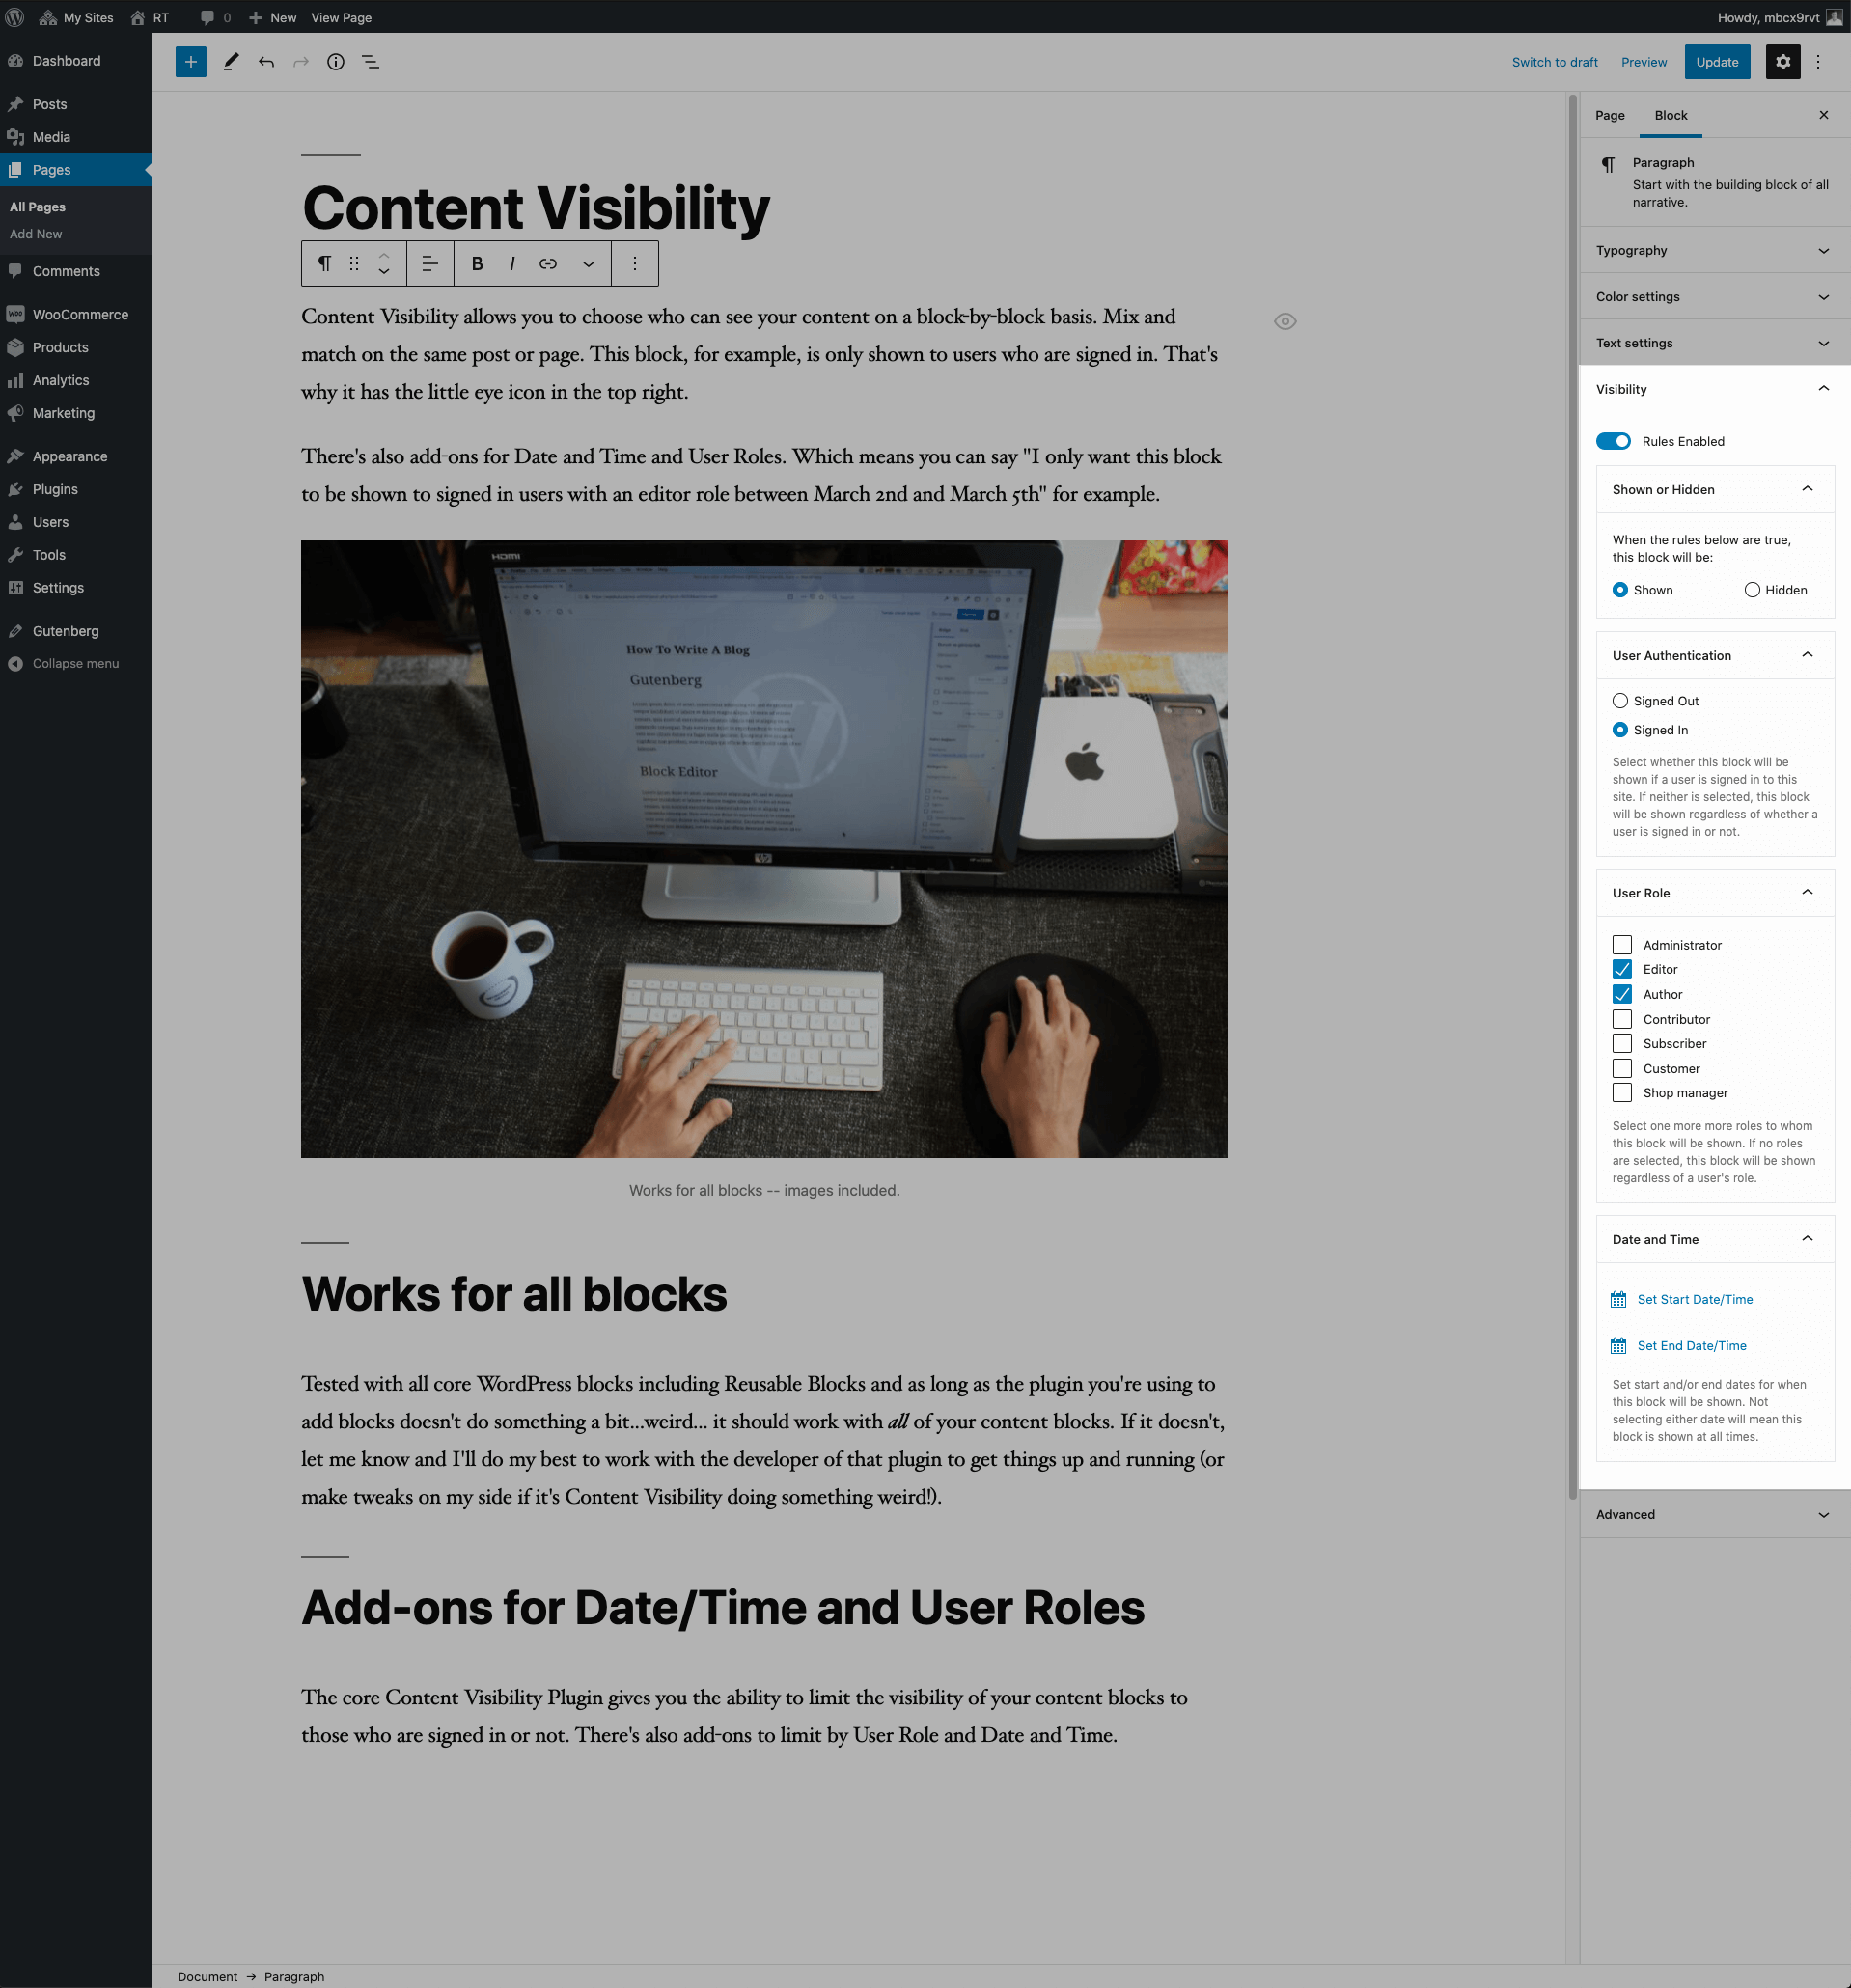 A screenshot of the WordPress content editor a part of the sidebar highlighted. The highlight contains extra controls for the selected paragraph which allows the content author to limit when and to whom the paragraph is shown.